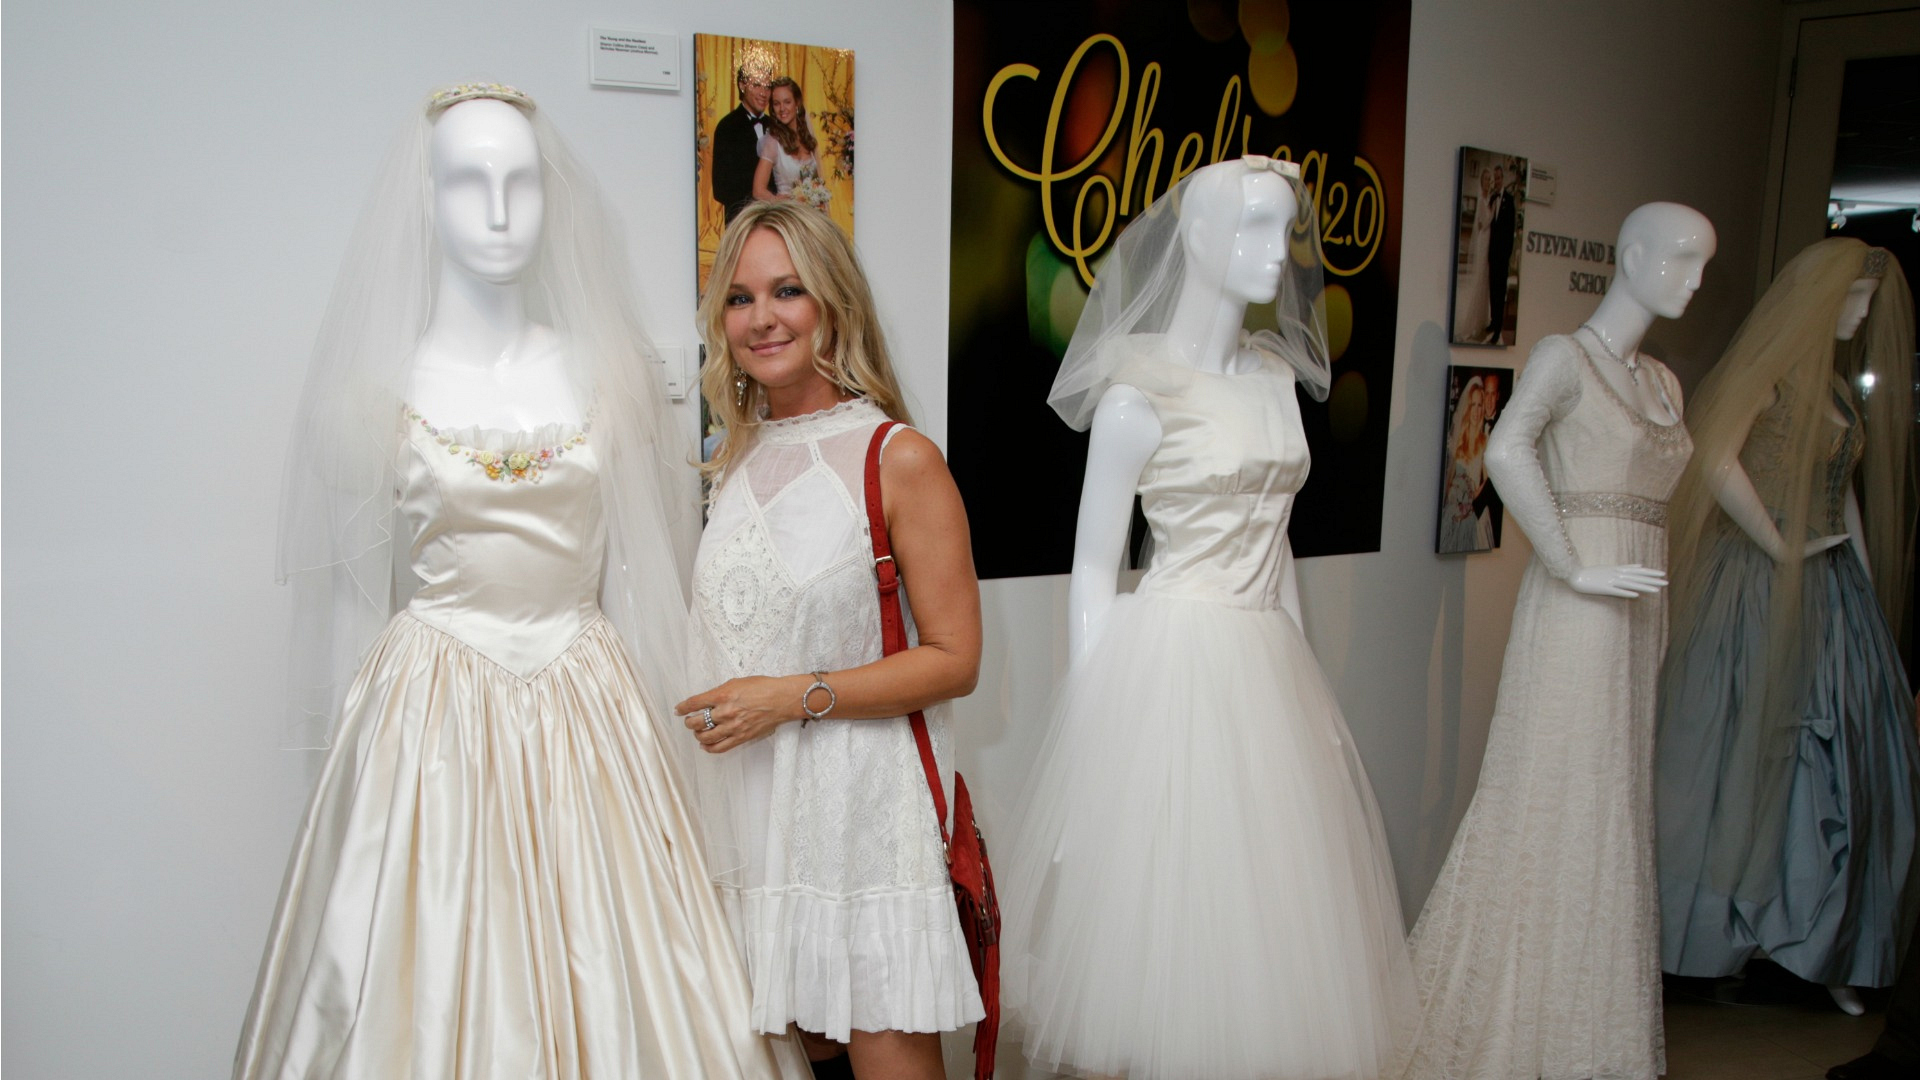 Sharon Case stopped to see one of her gorgeous gowns.